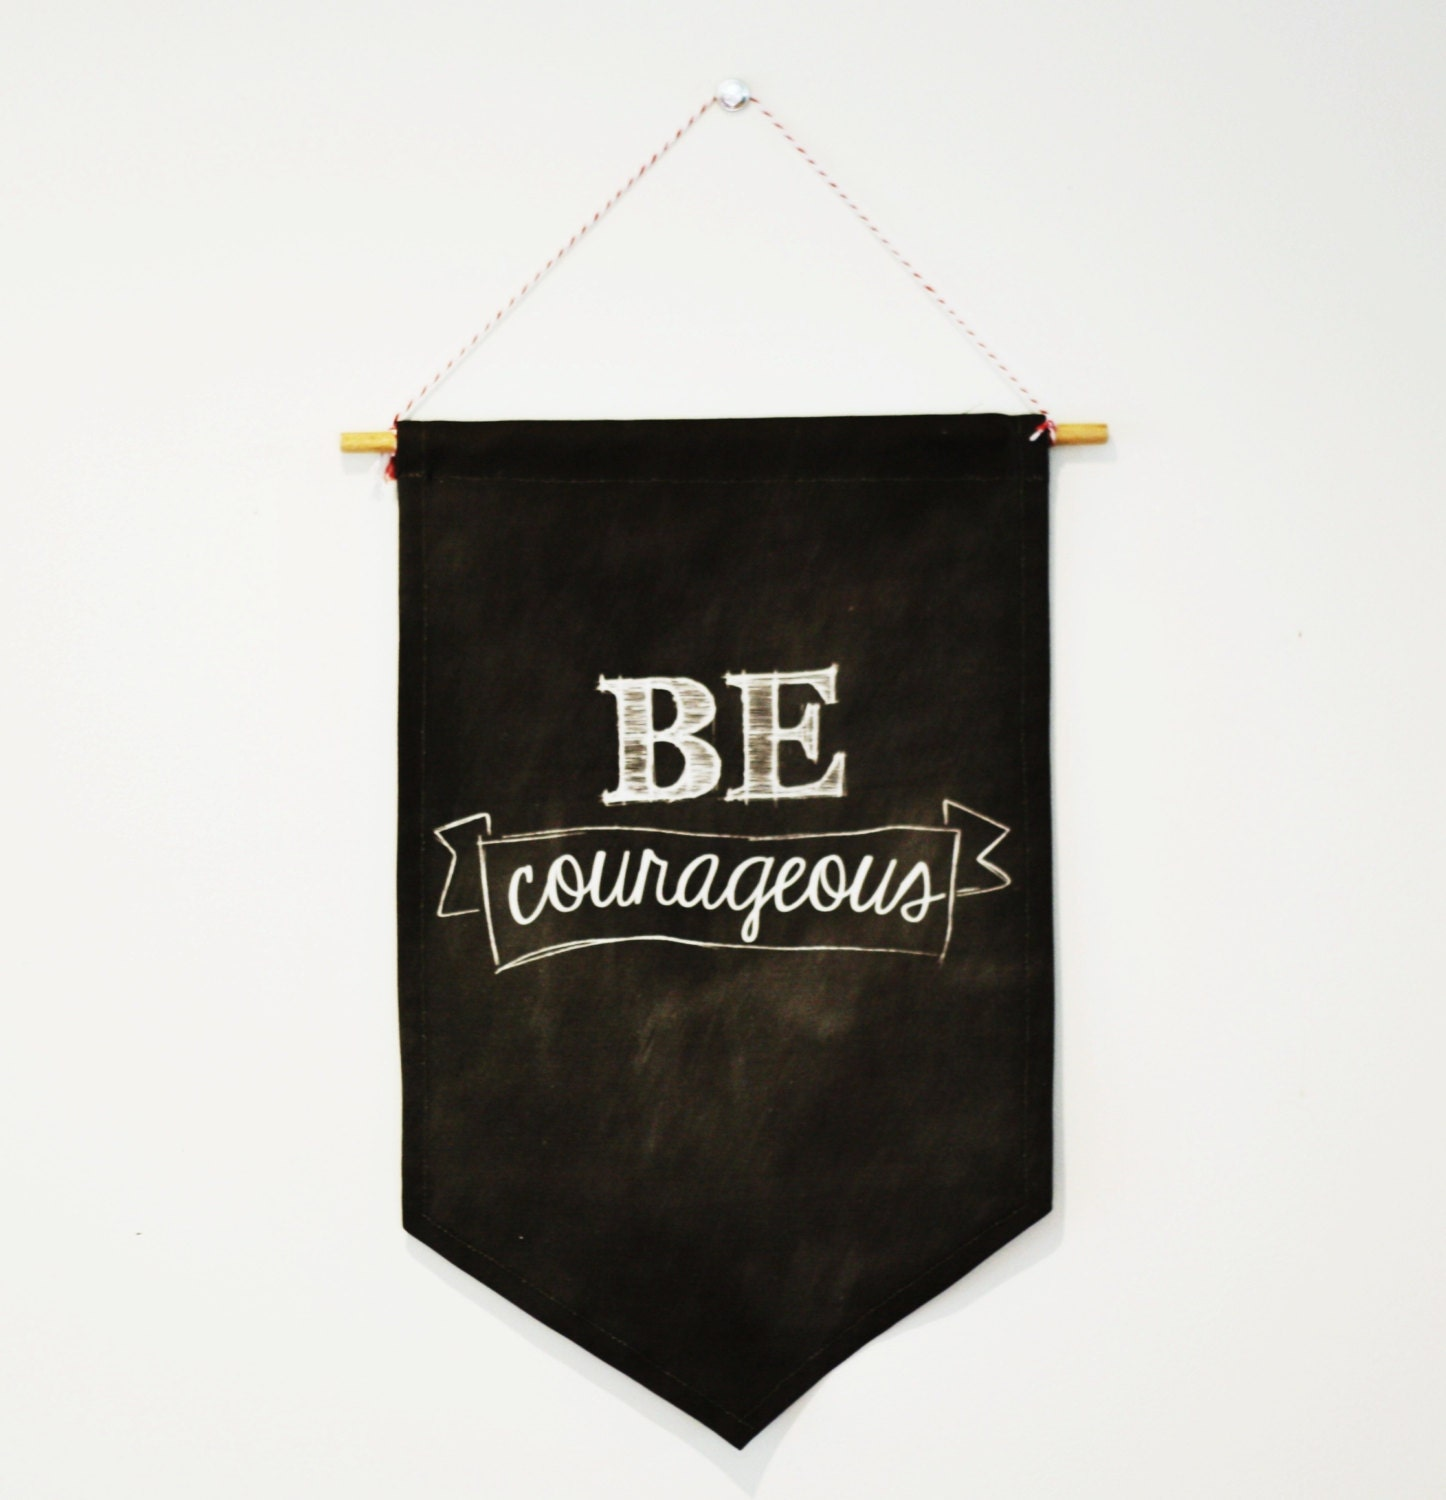 SIGNAGE sign Chalk art sign WALL ART wall hanging  flag, pennant,banner. Be Courageous. - mybeardedpigeon